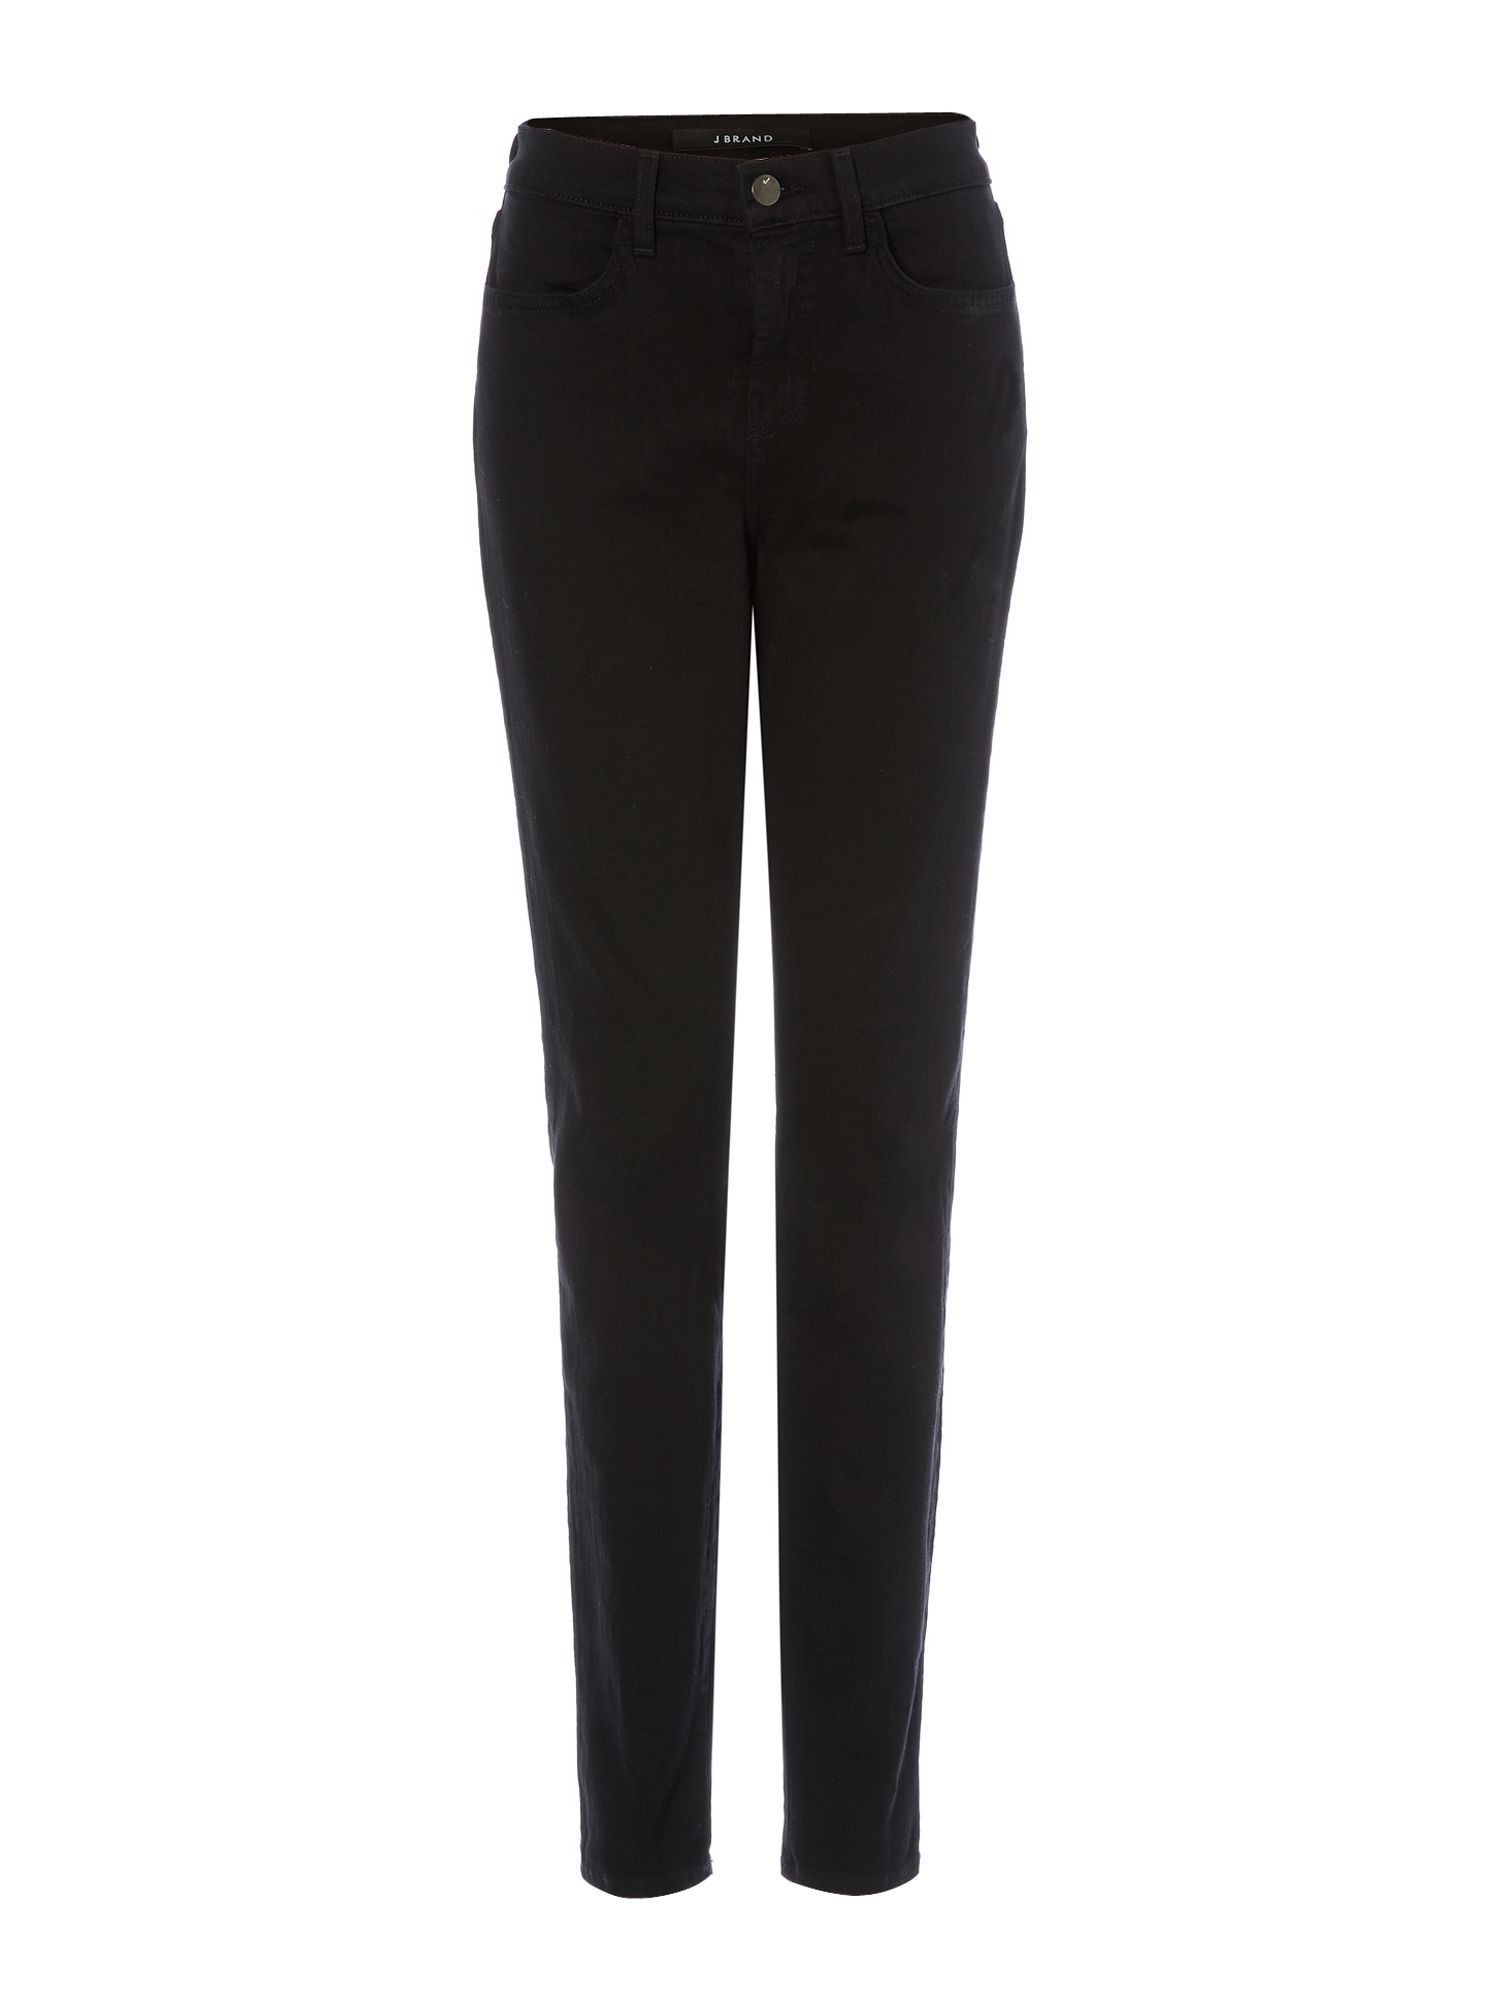 Maria high rise skinny jeans in Hewson